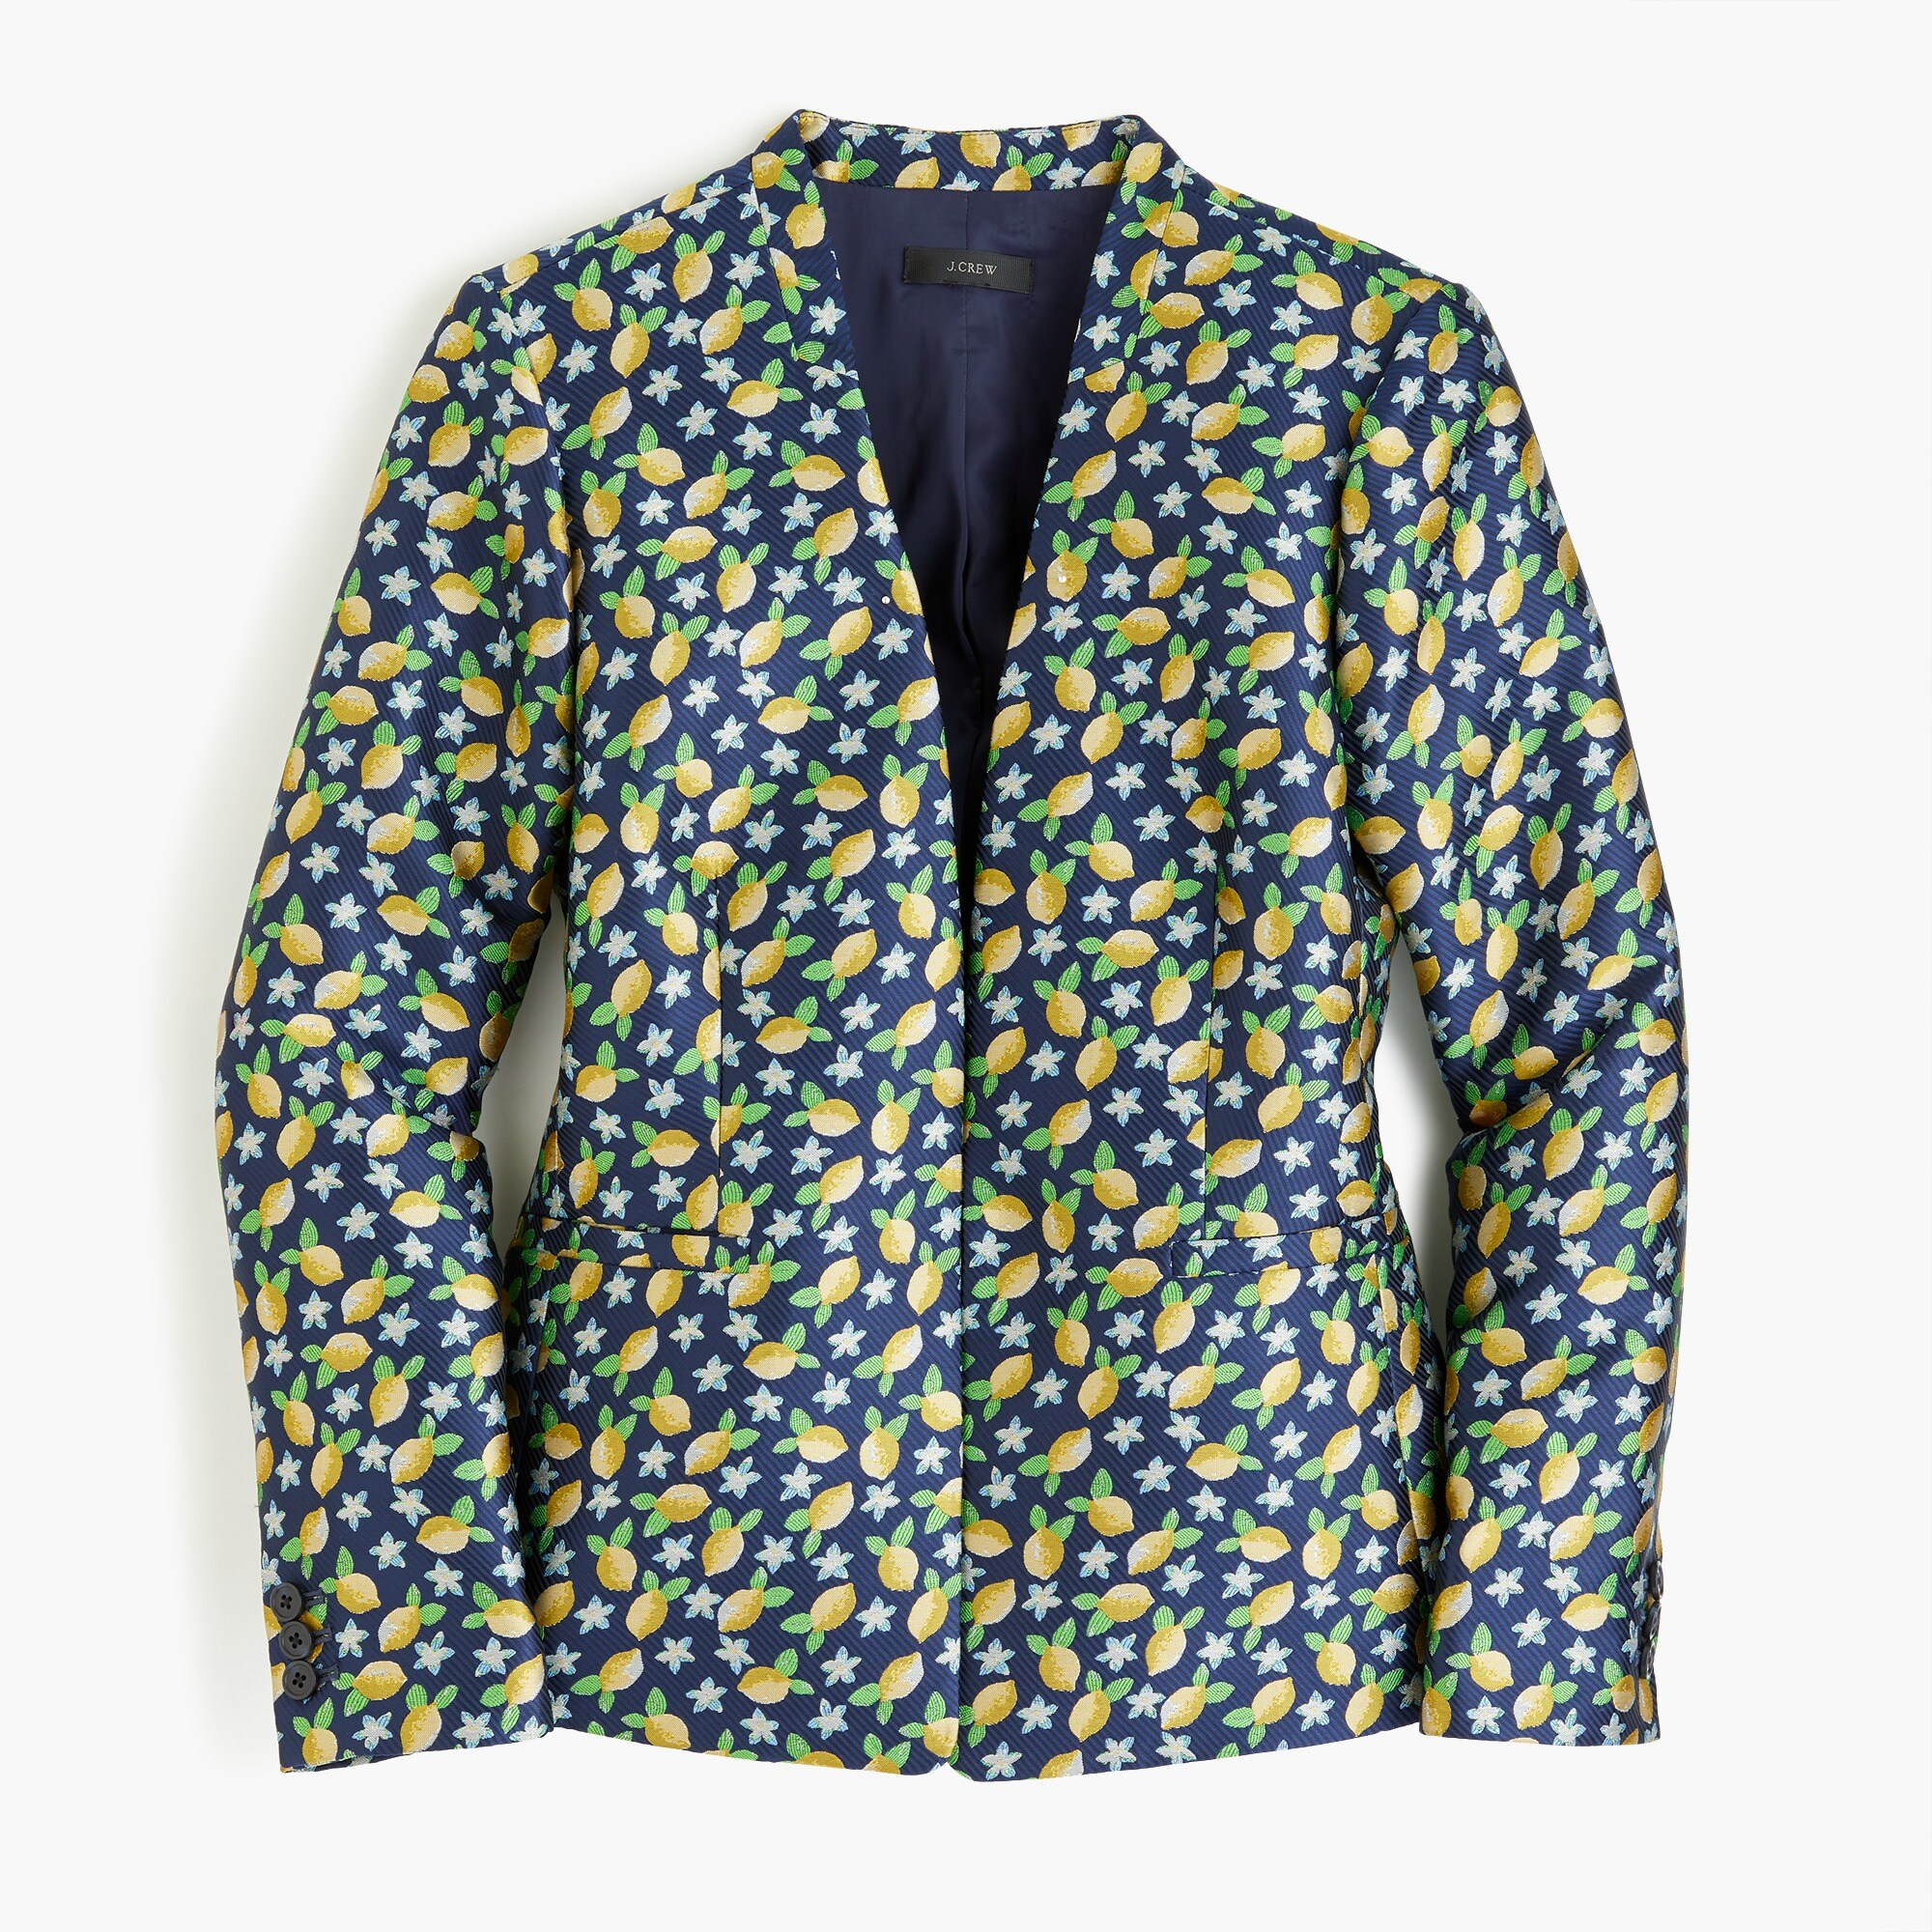 Image 4 for Going-out blazer in lemon jacquard